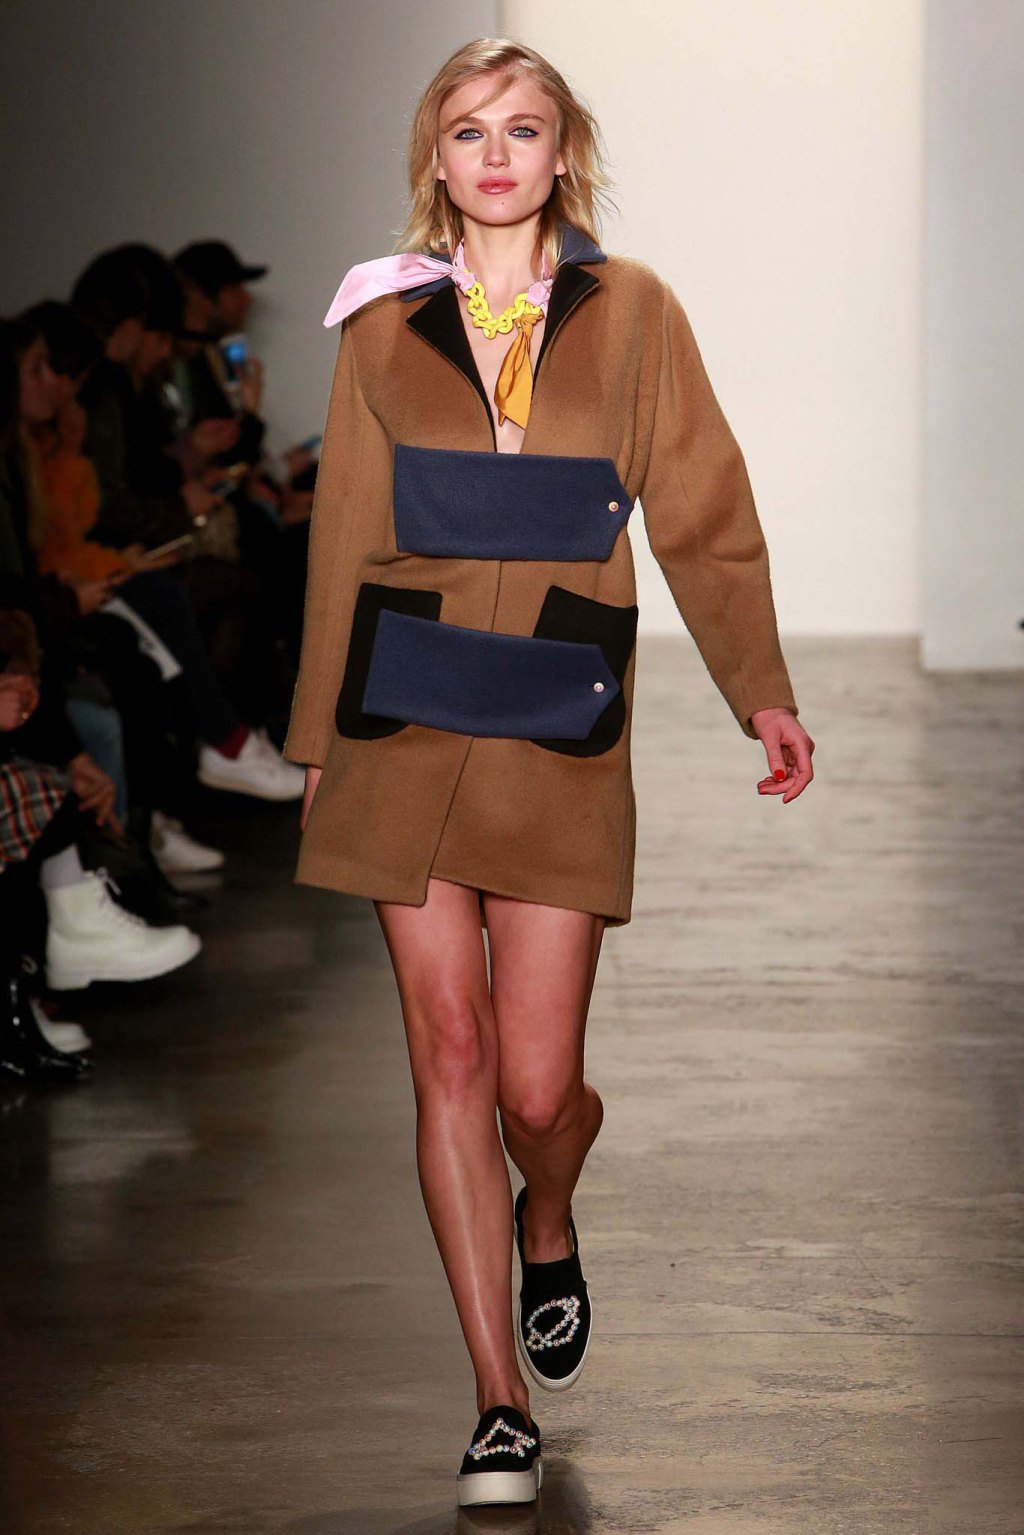 NYFW Anna K Fashion Show Fall Winter 2016 Louboutins & Love Fashion Blog Esther Santer NYC Street Style Models Collection Hair Makeup Dress Trendy Pretty Pattern Print Spaceship Fun Sneakers Shoes Blue Red Yellow Skirt Colorful Plaid Coat Scarf Planet.jpg